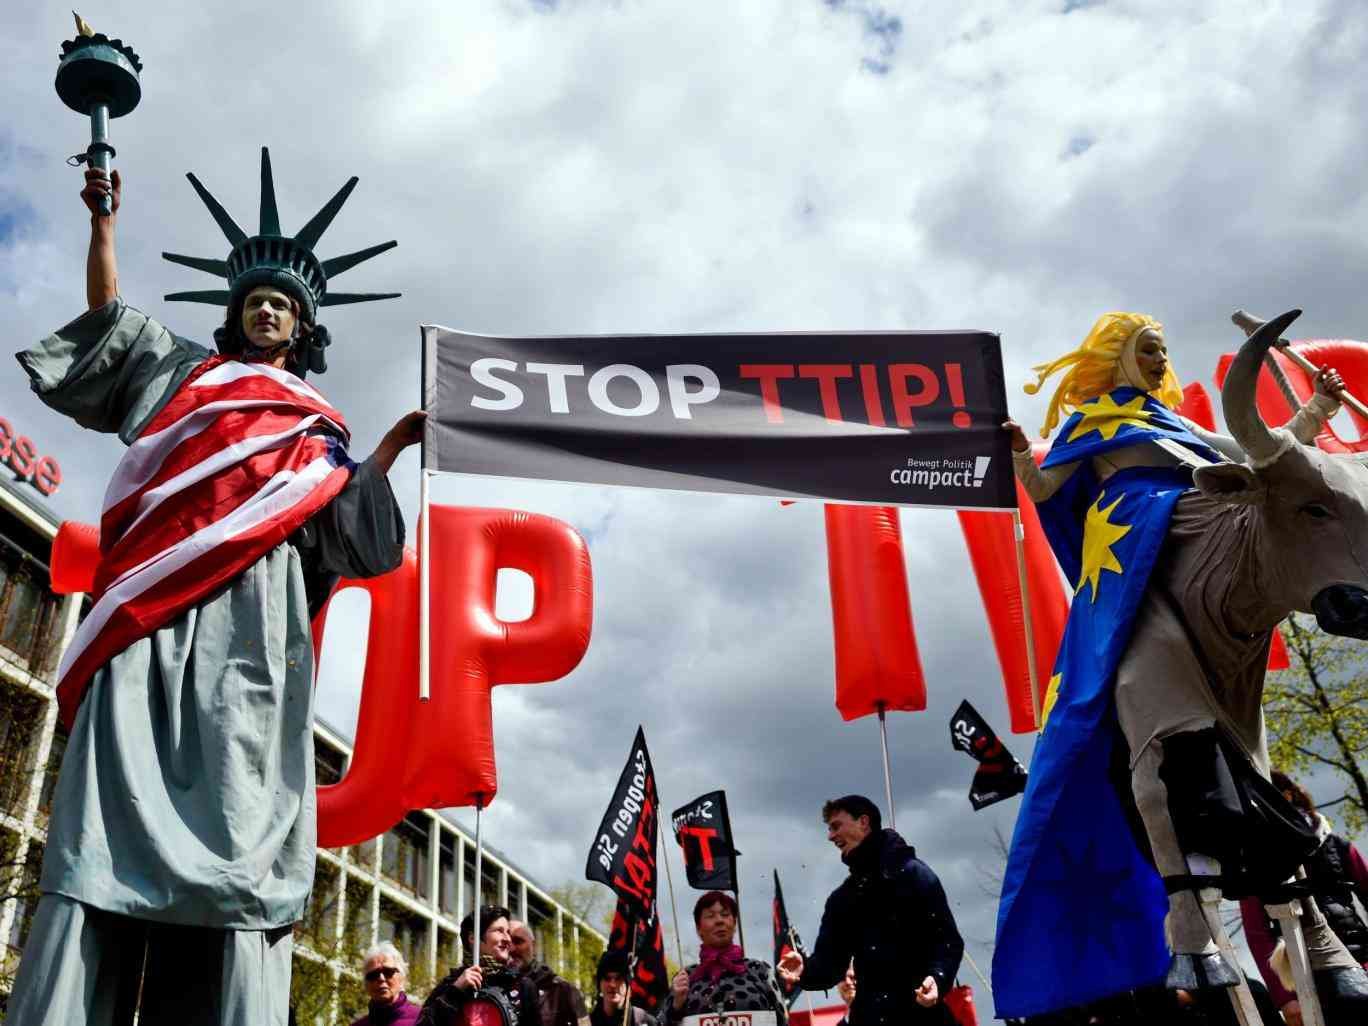 TTIP has failed – but no one is admitting it, says German Vice-Chancellor